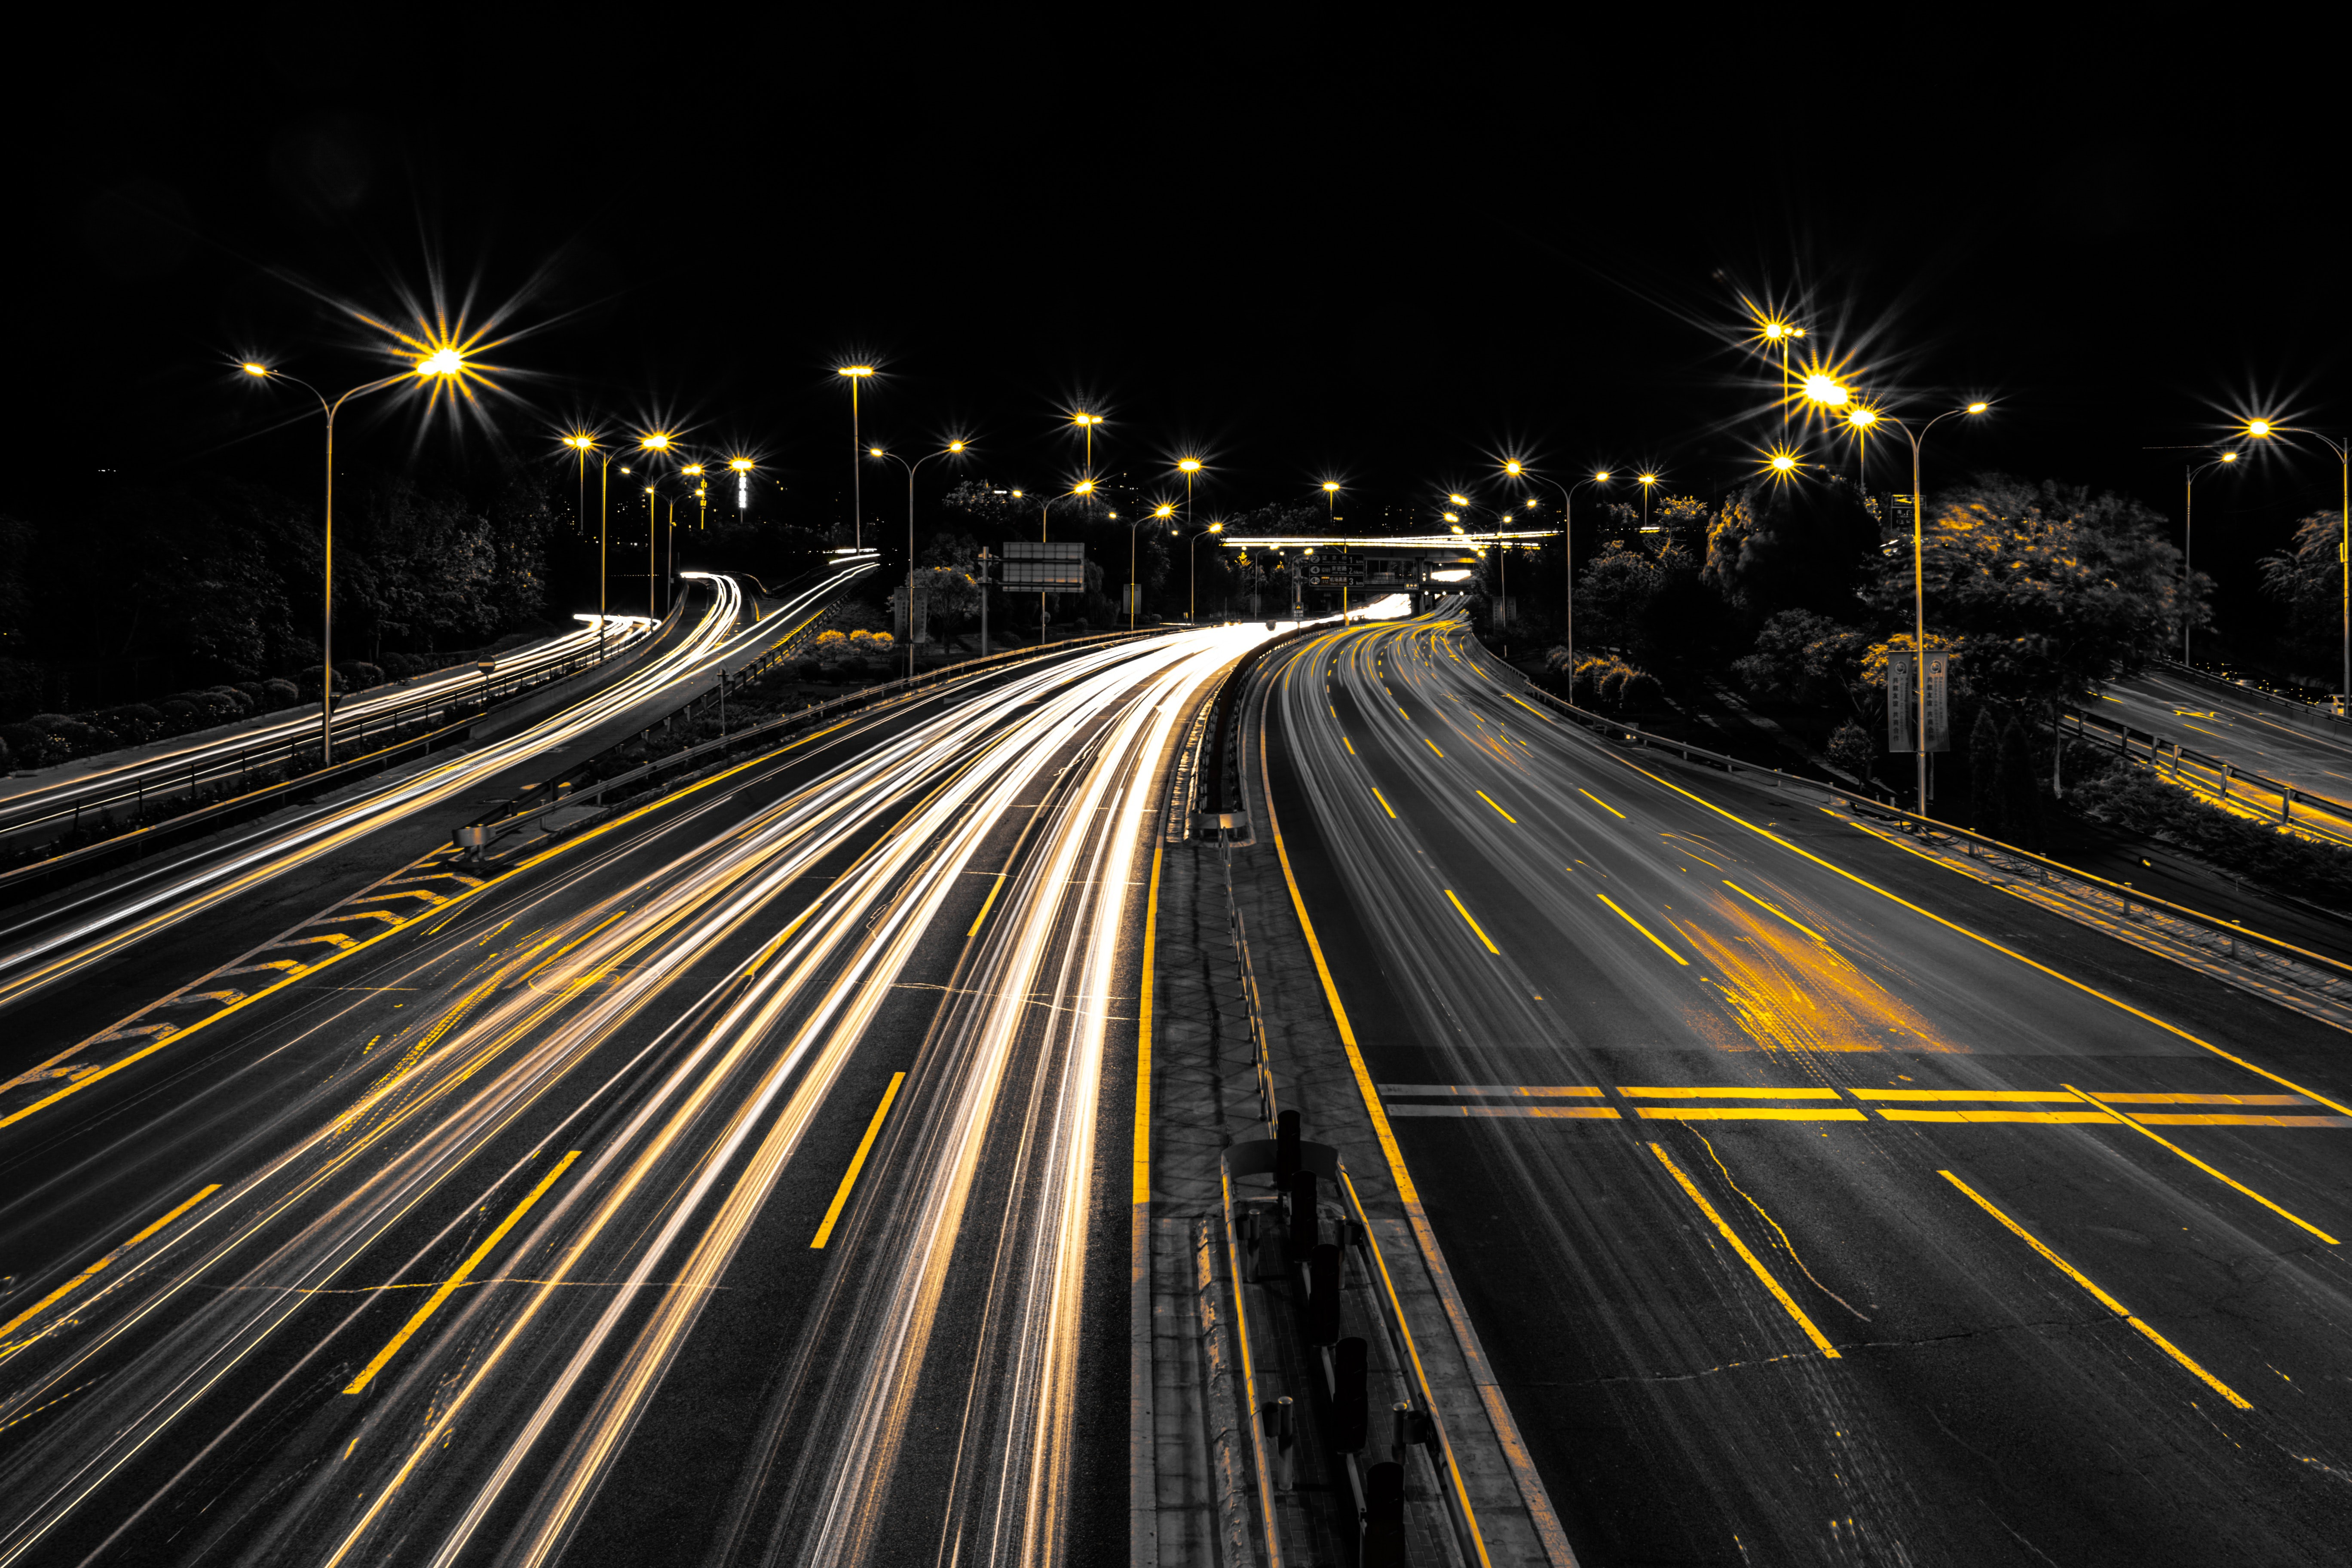 Big Data Can Detect Problems on Roads